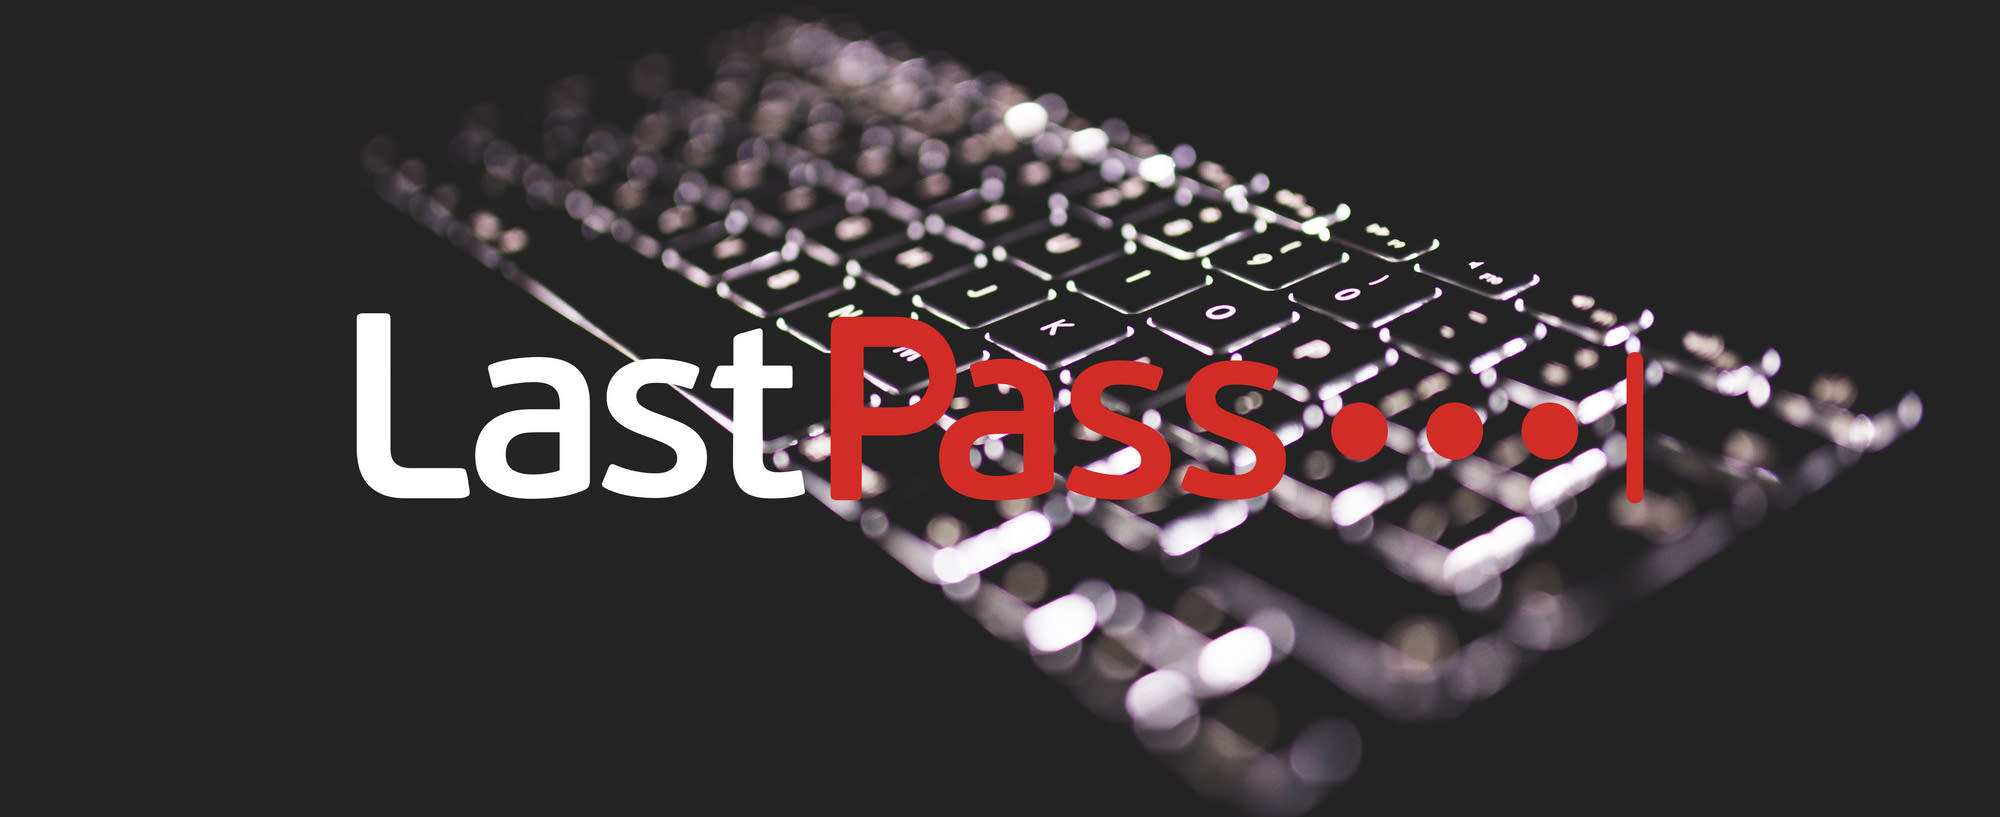 Why I migrated from LastPass to Bitwarden | Ctrl blog